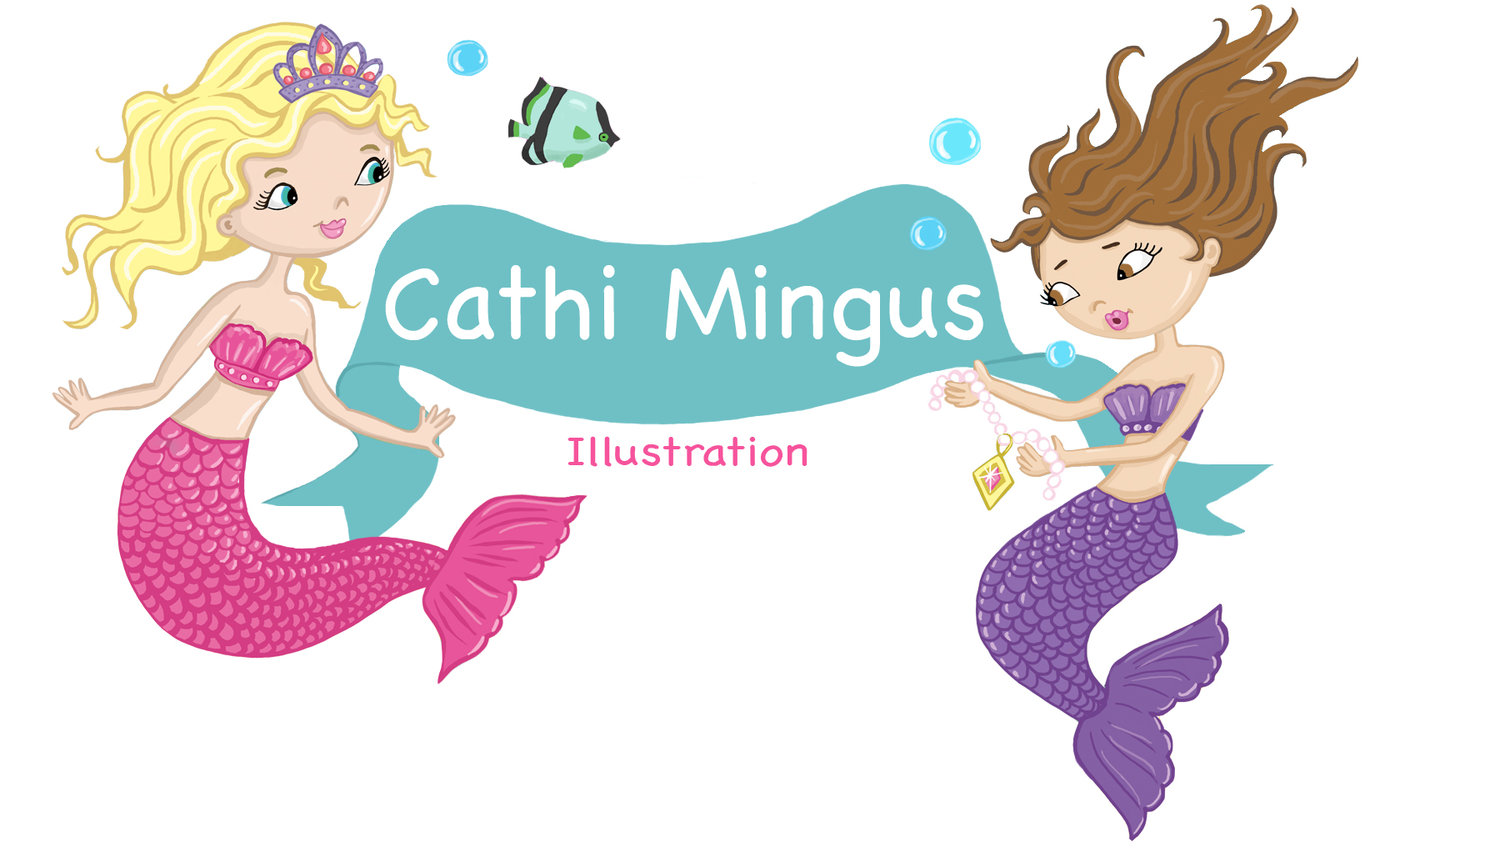 Cathi Mingus Illustration